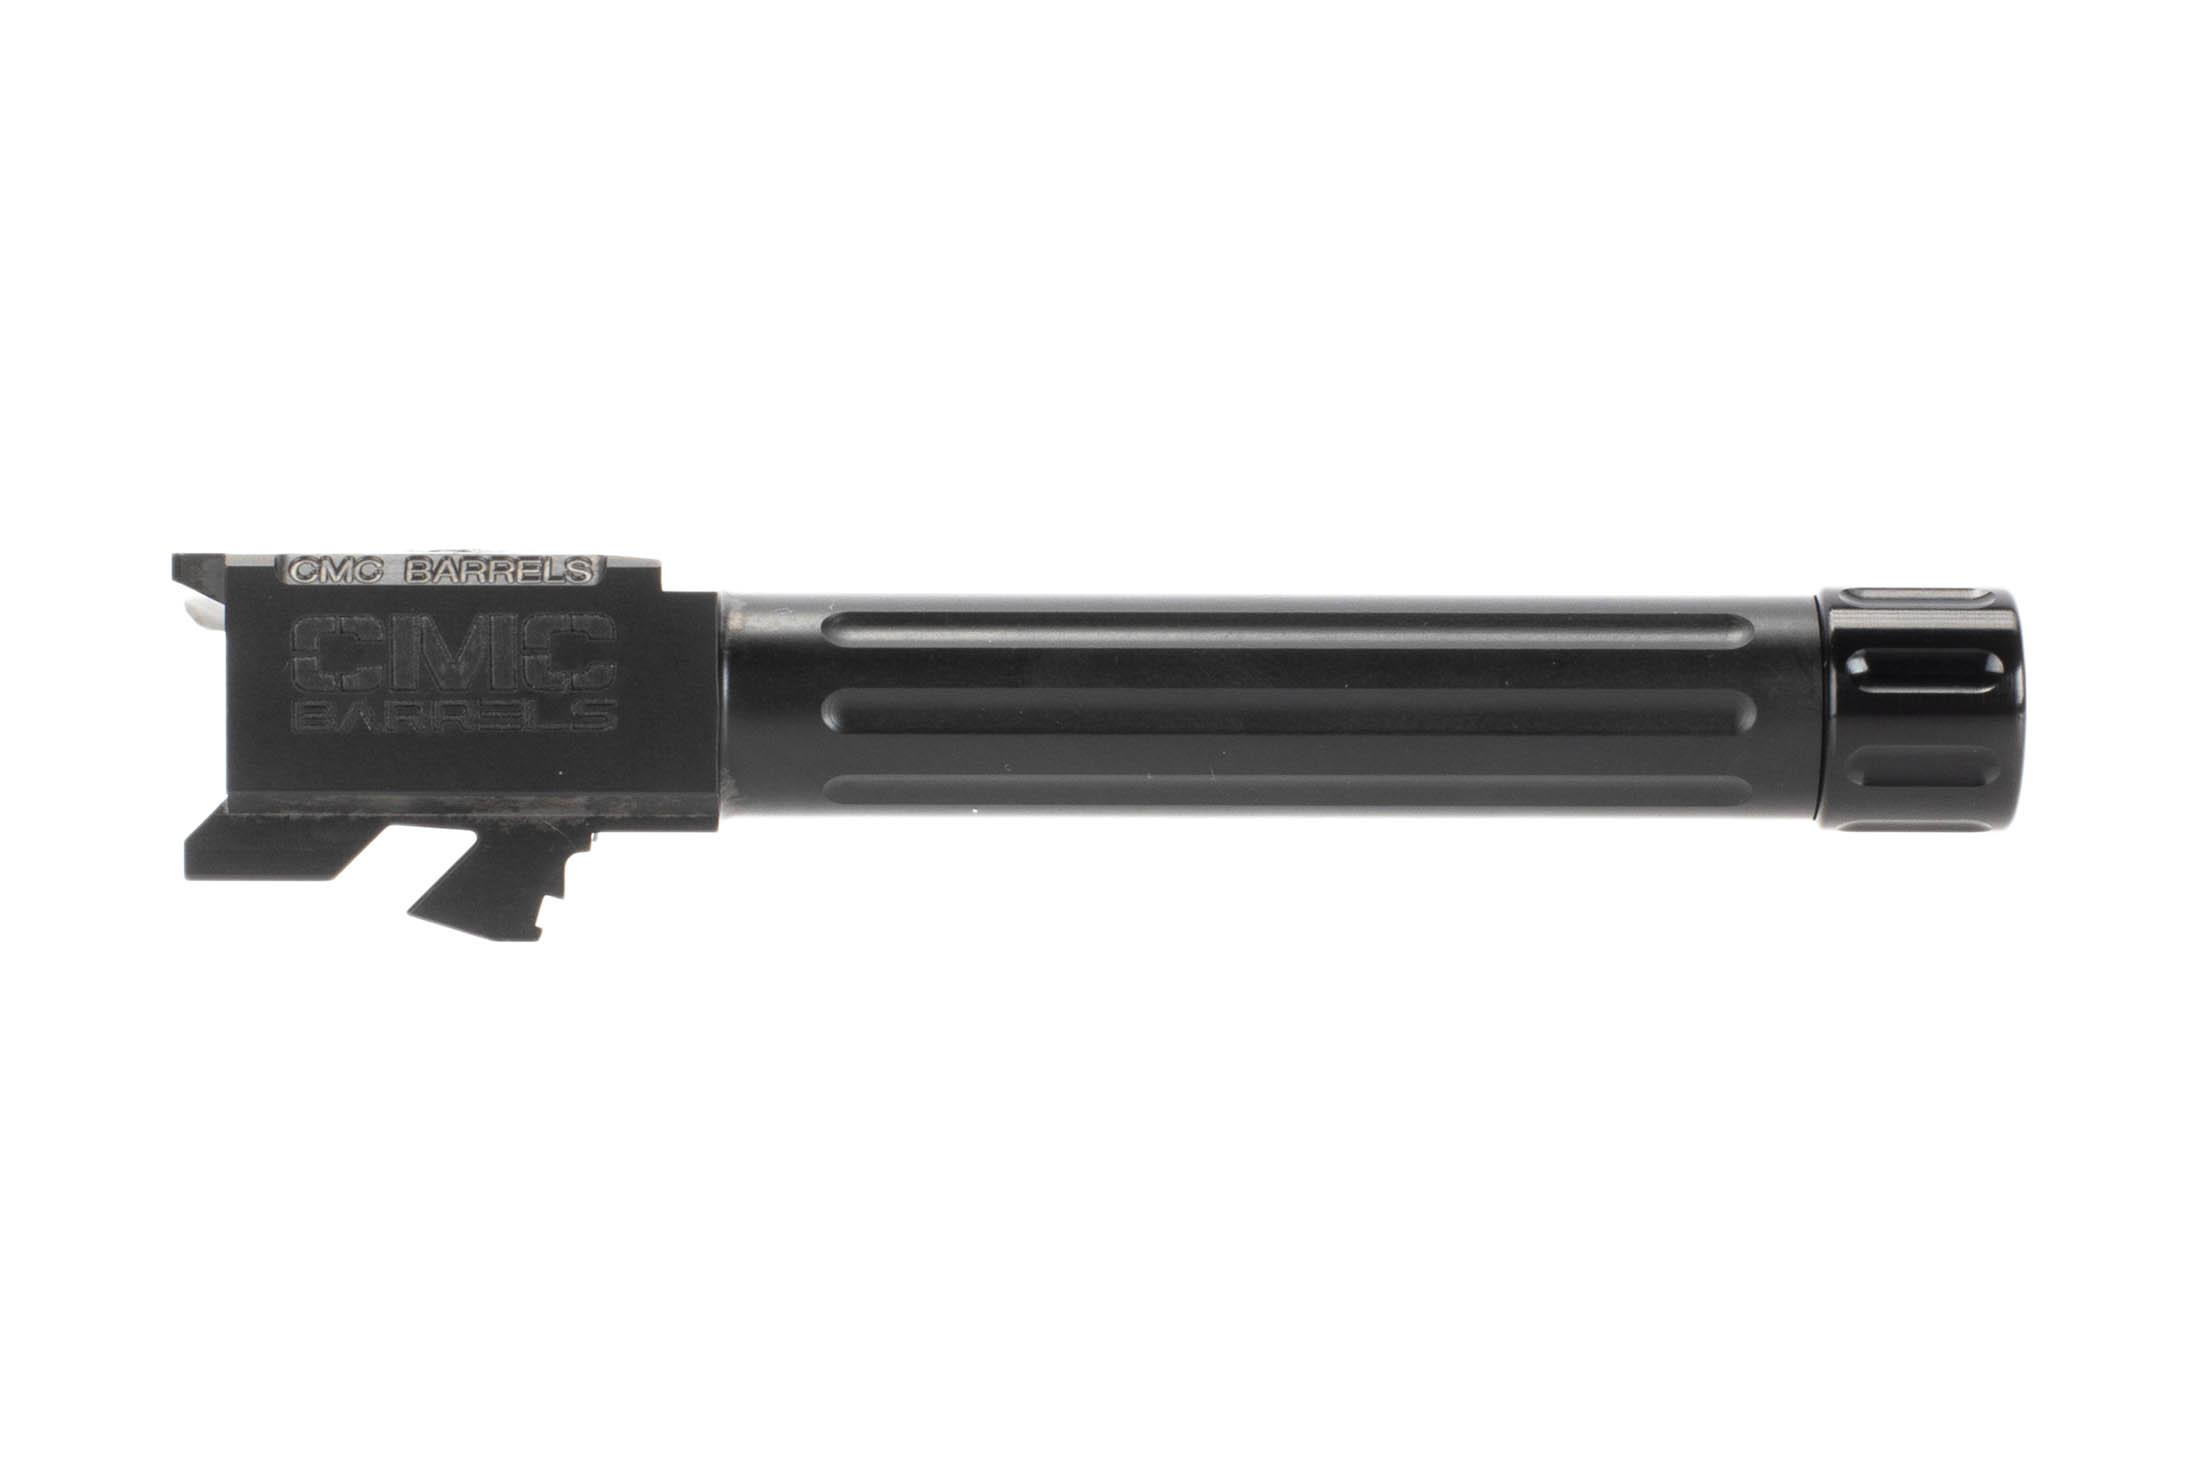 CMC Triggers threaded fluted Glock 19 barrel with black DLC finish drops directly into standard Glock pistols.